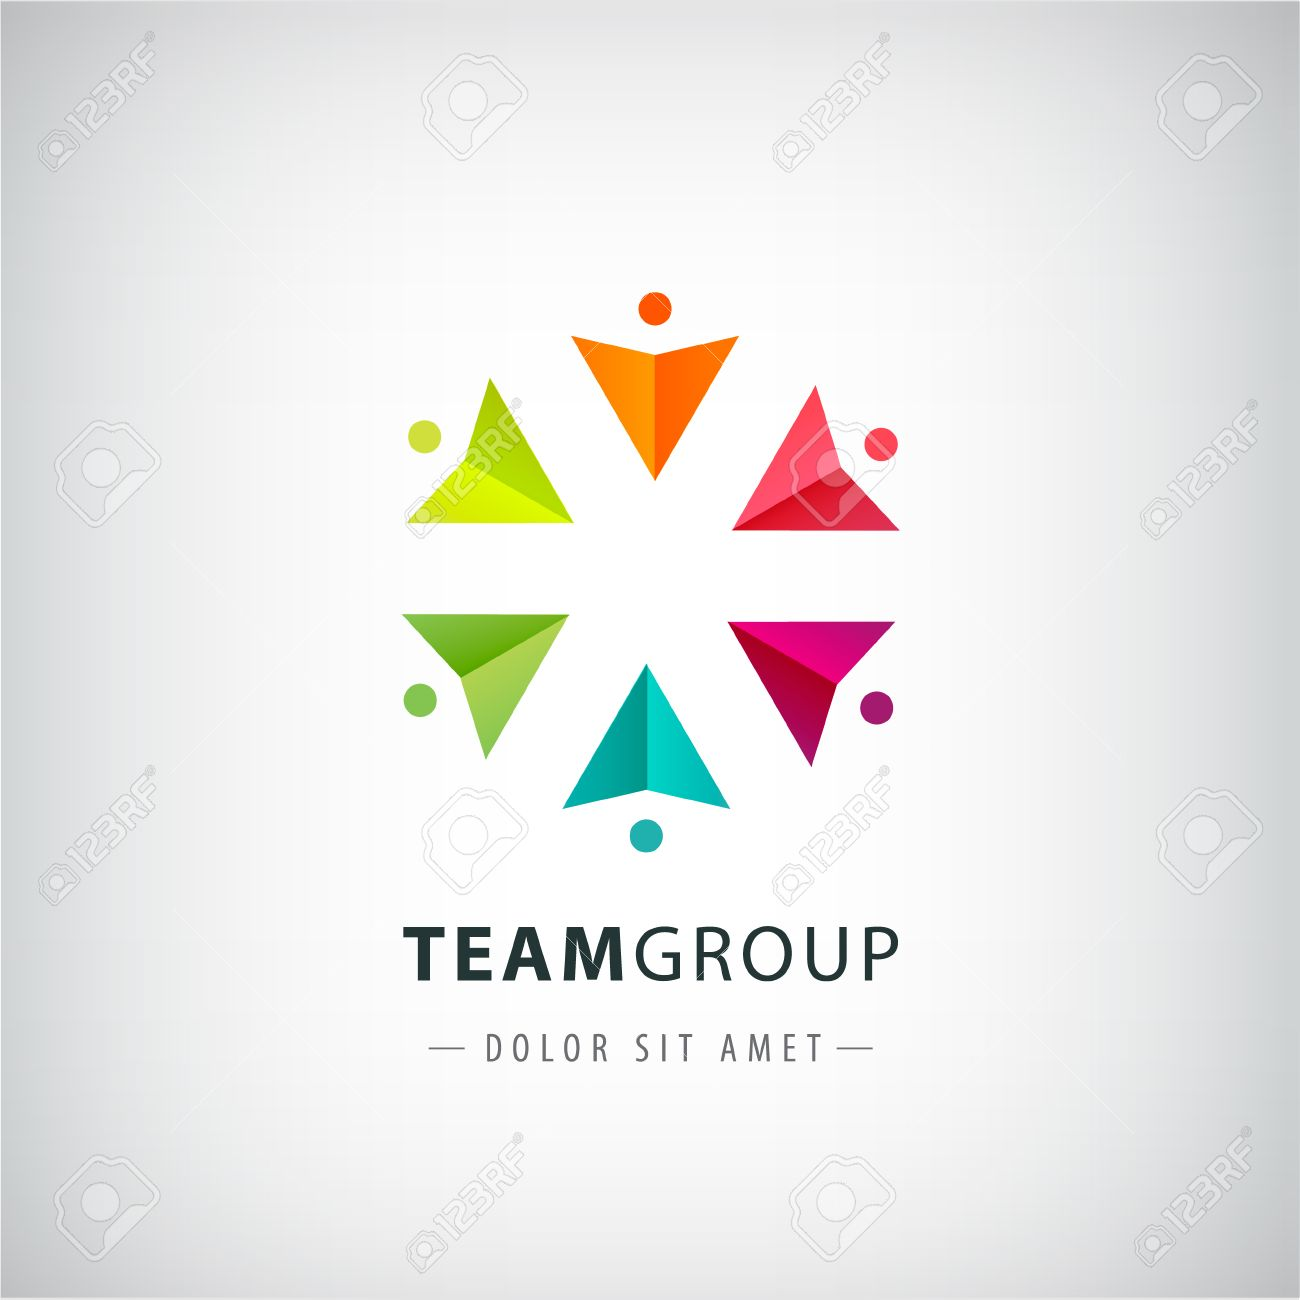 Vector Teamwork Logo Social Net People Together Icon Company